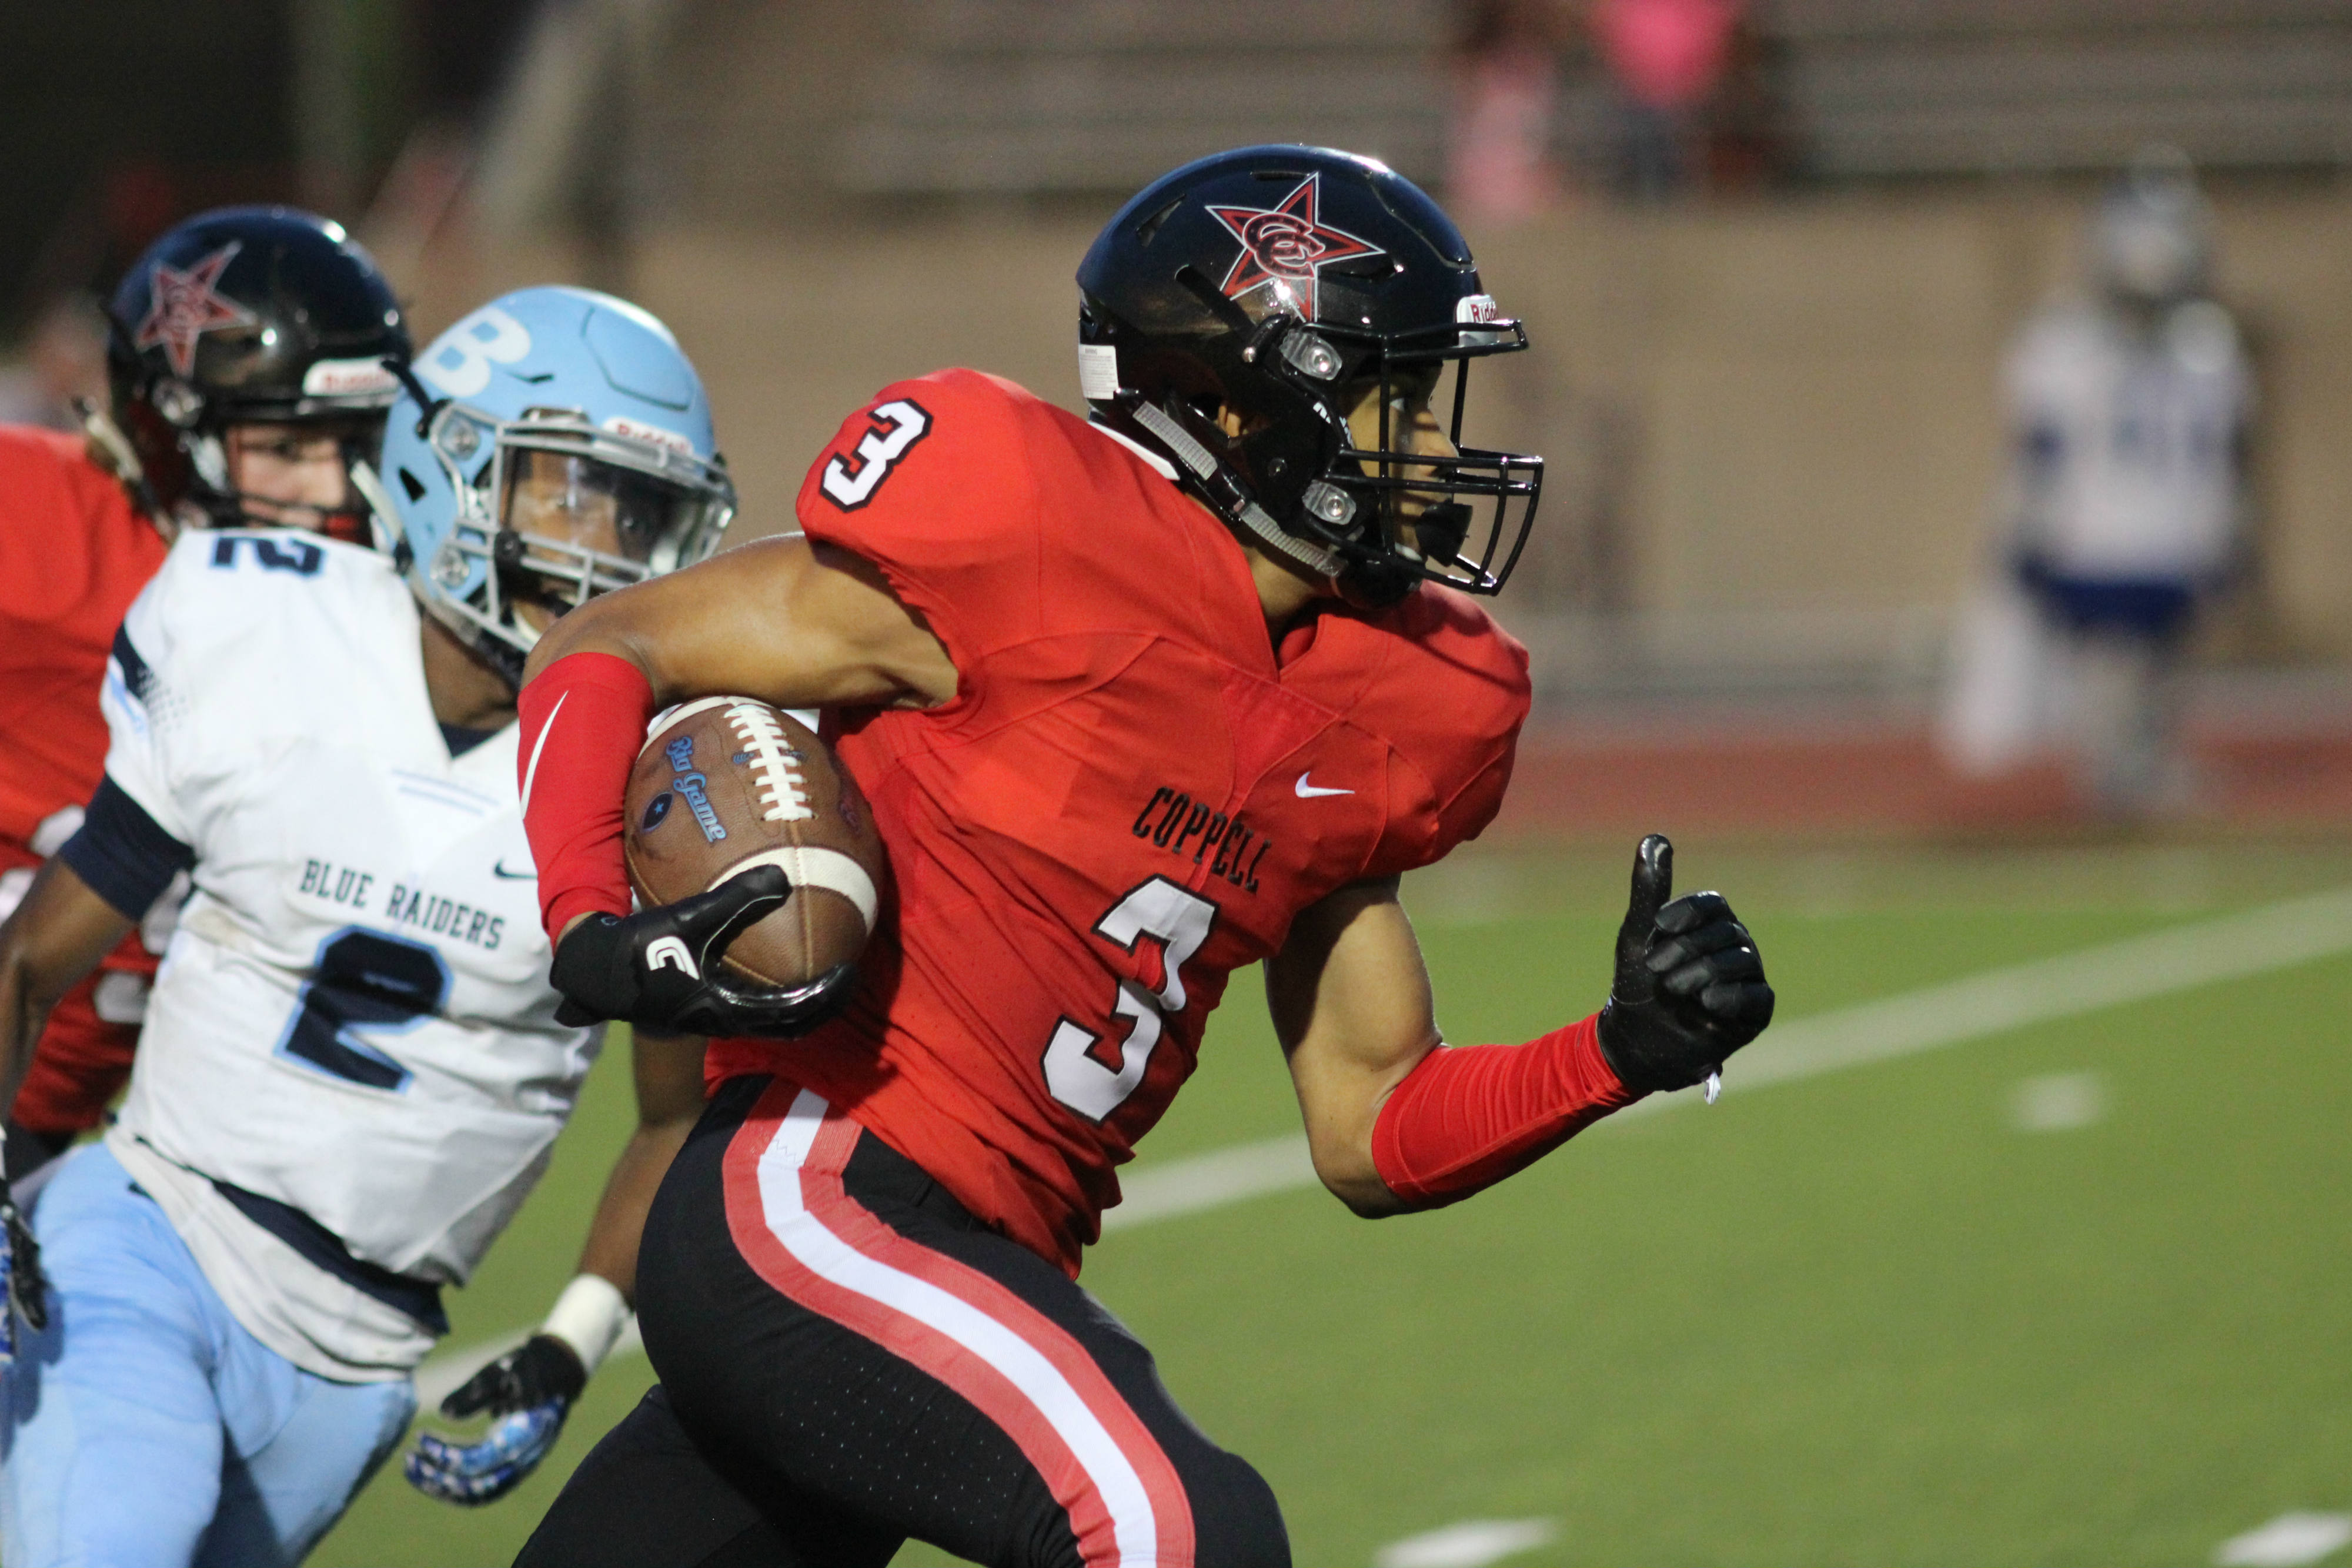 During Friday night's game, Coppell High School sophomore and free safety Jonathan McGill runs the ball down the field as the first quarter comes to a close at Buddy Echols Field. The Coppell Cowboys ended the night with a 28-21 victory over L.D. Bell. Photo by Amanda Hair.